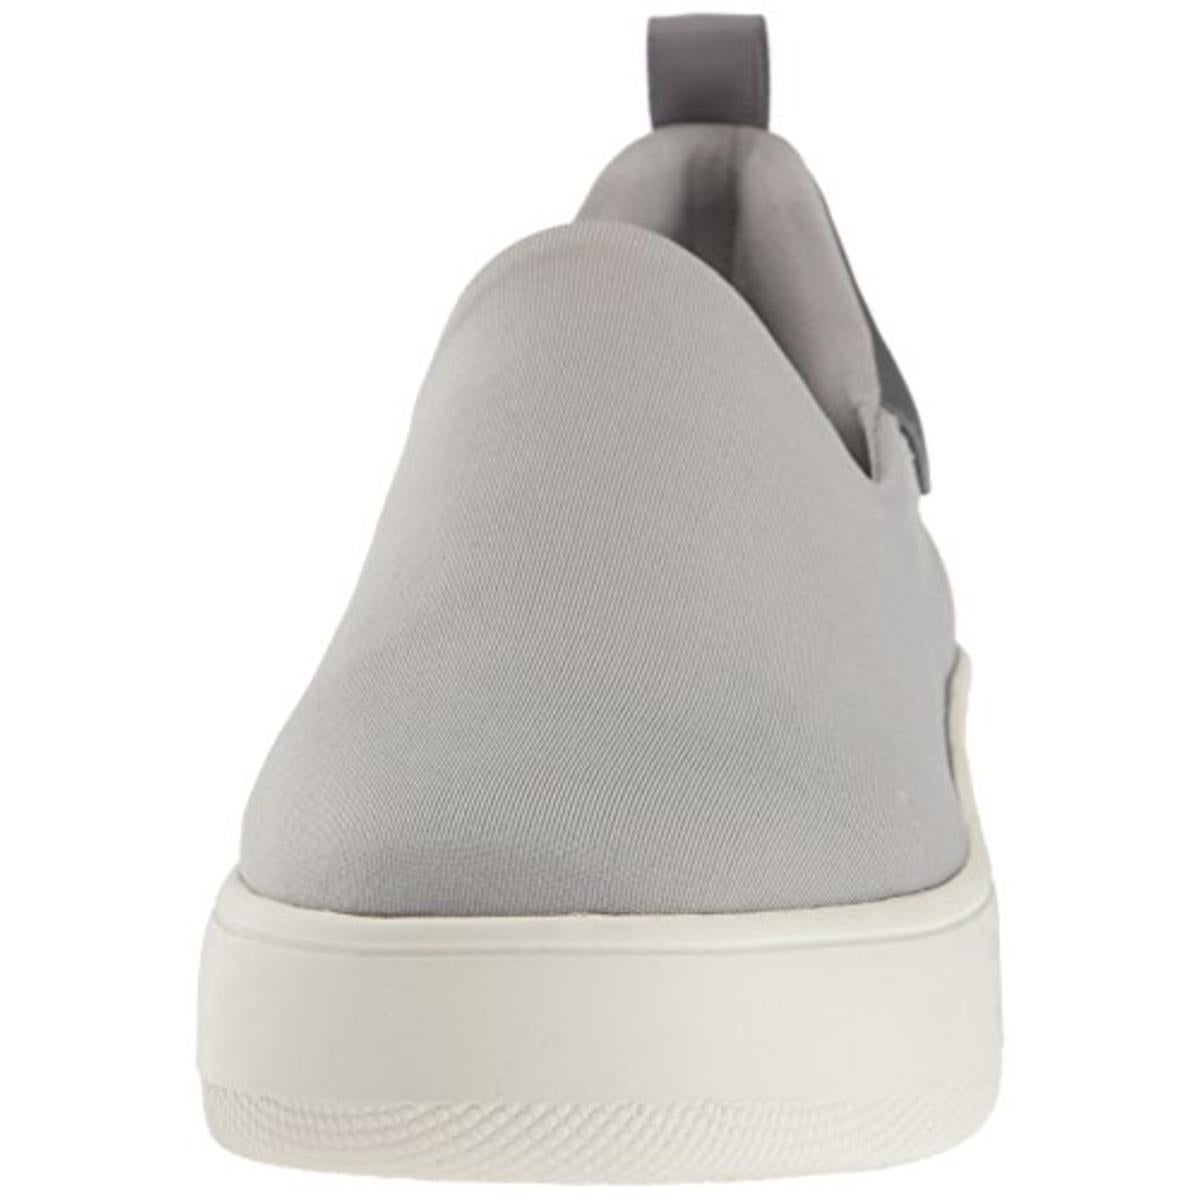 d8ae68dc101 Shop Steven By Steve Madden Womens Balas Fashion Sneakers Contrast Trim  Platform - Free Shipping On Orders Over  45 - Overstock - 18905132